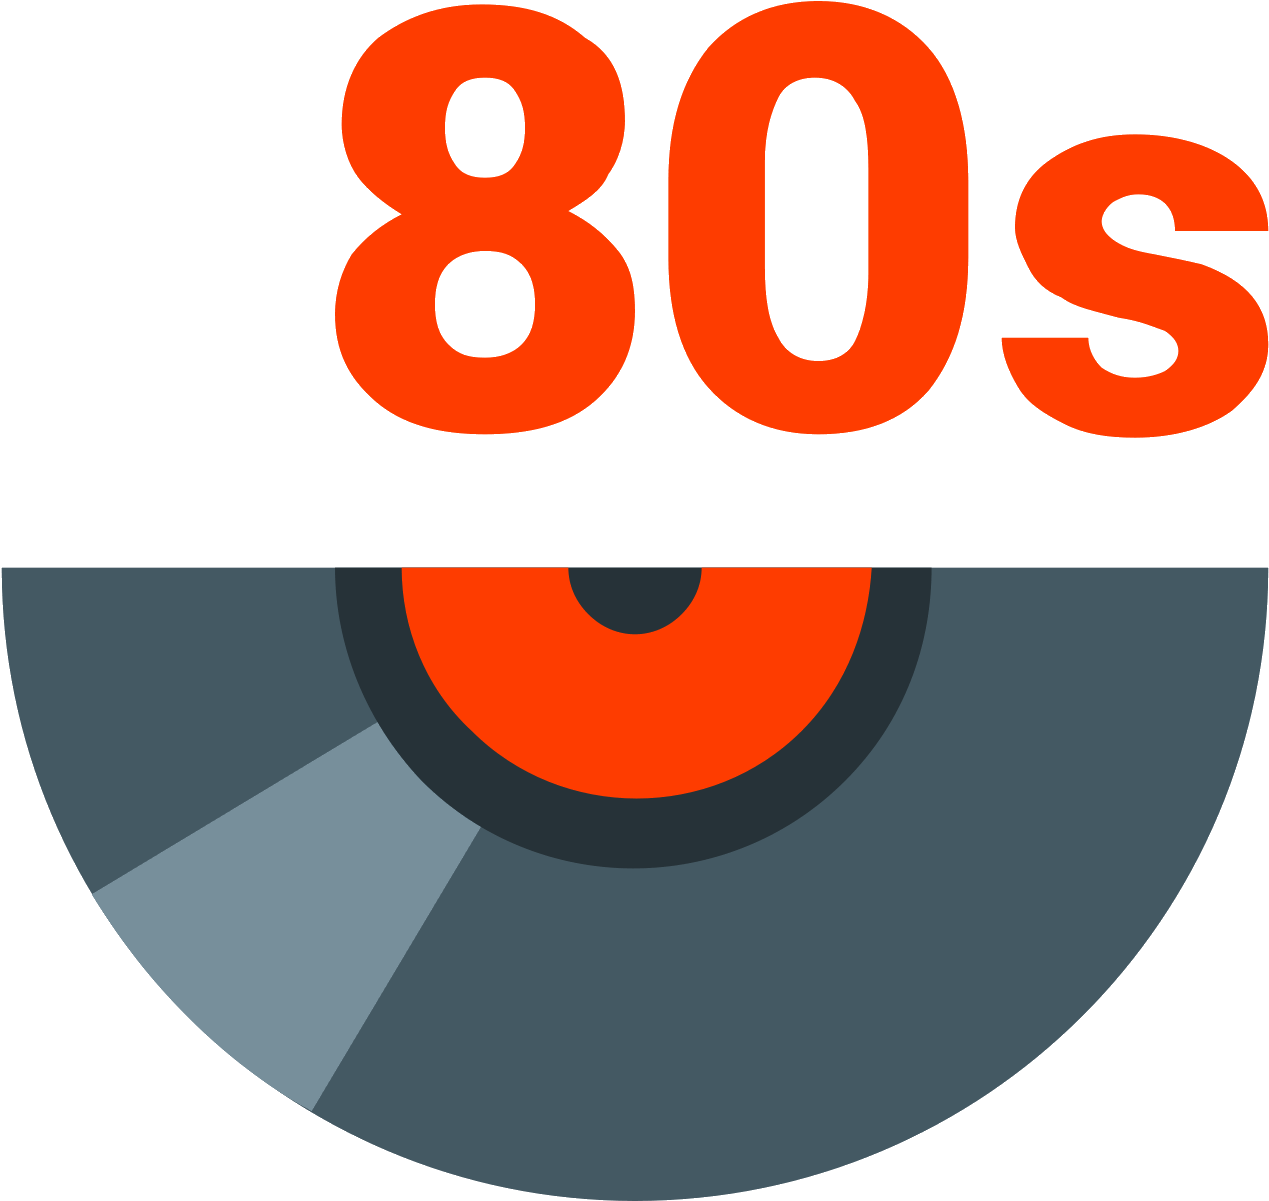 Download 80s Music Icon.